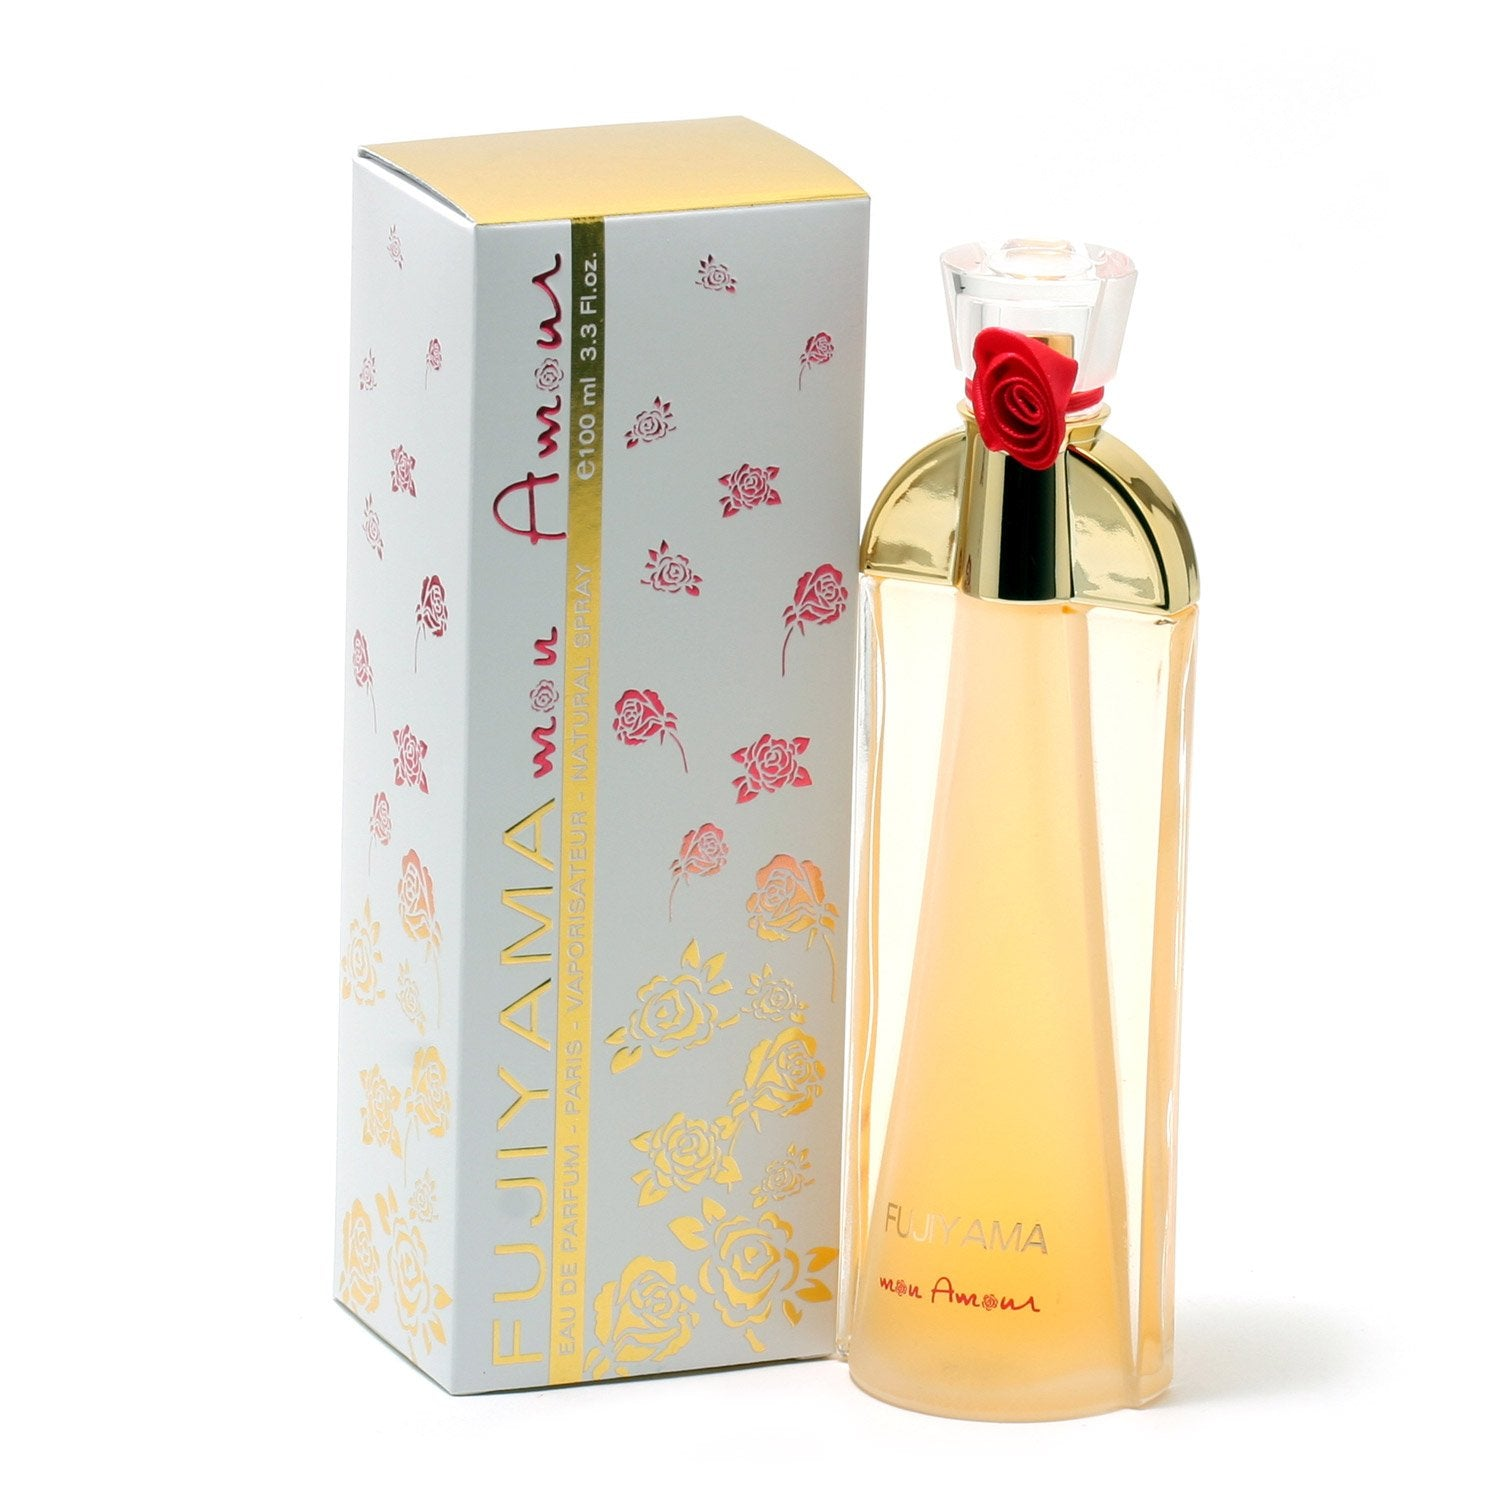 Perfume - FUJIYAMA MON AMOUR FOR WOMEN BY SUCCES DE PARIS - EAU DE PARFUM SPRAY, 3.3 OZ